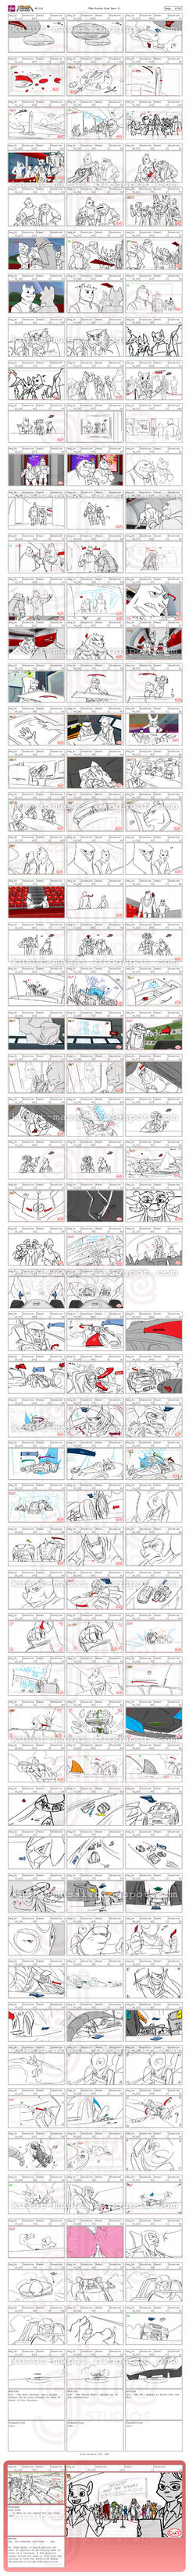 Rimba Racer Storyboard (S01 EP012) by Celestial4ever